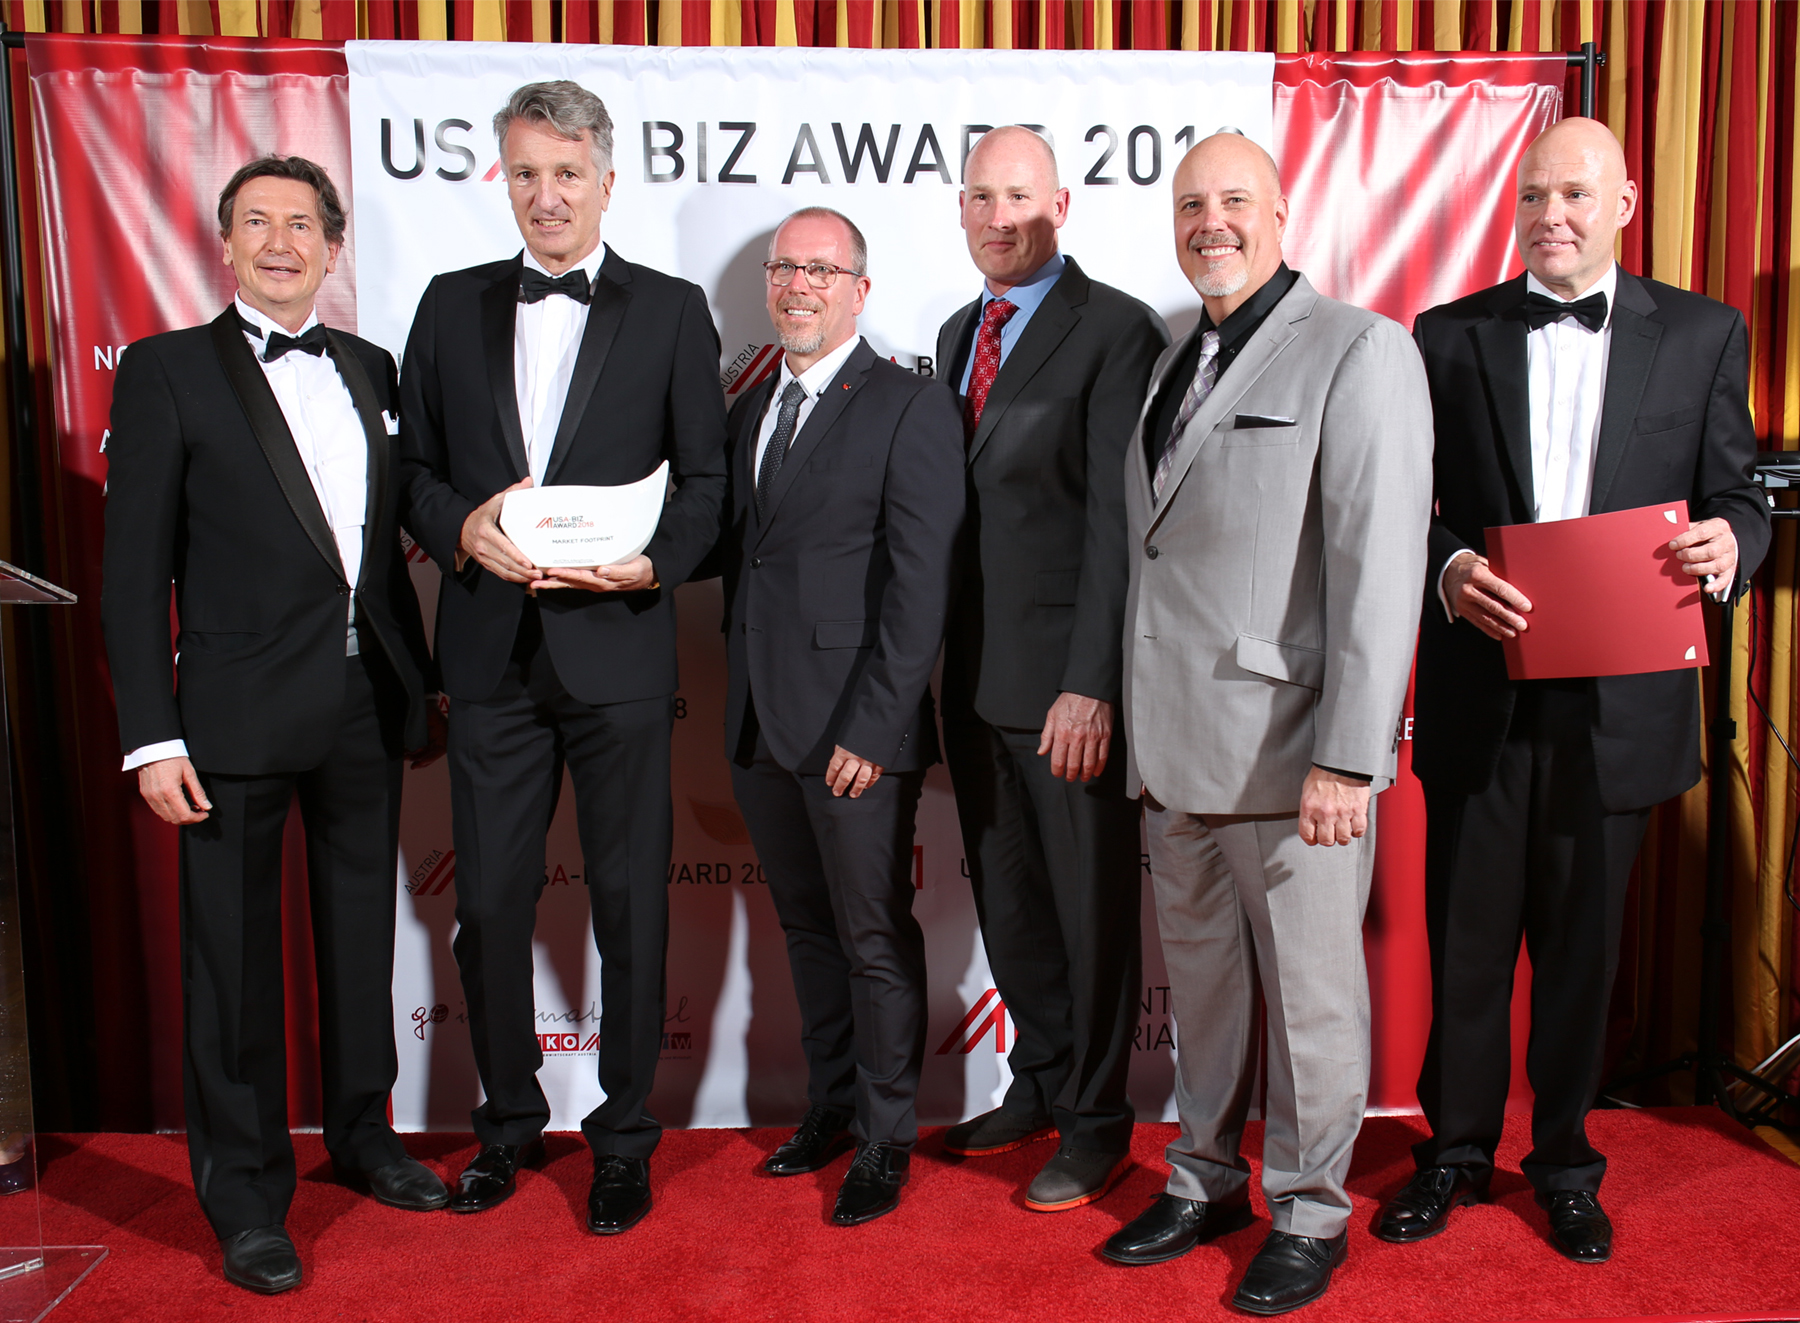 From left: Walter Koren (Austrian Trade Commissioner in Los Angeles), Harald Kogler (Hirsch, CEO), Manfred Rieglhofer (Hirsch, Managing Director), Sammy Harrill (Hirsch, Service Manager), Steve Weber (Hirsch, Sales Manager North America), and Consul General Andreas Launer